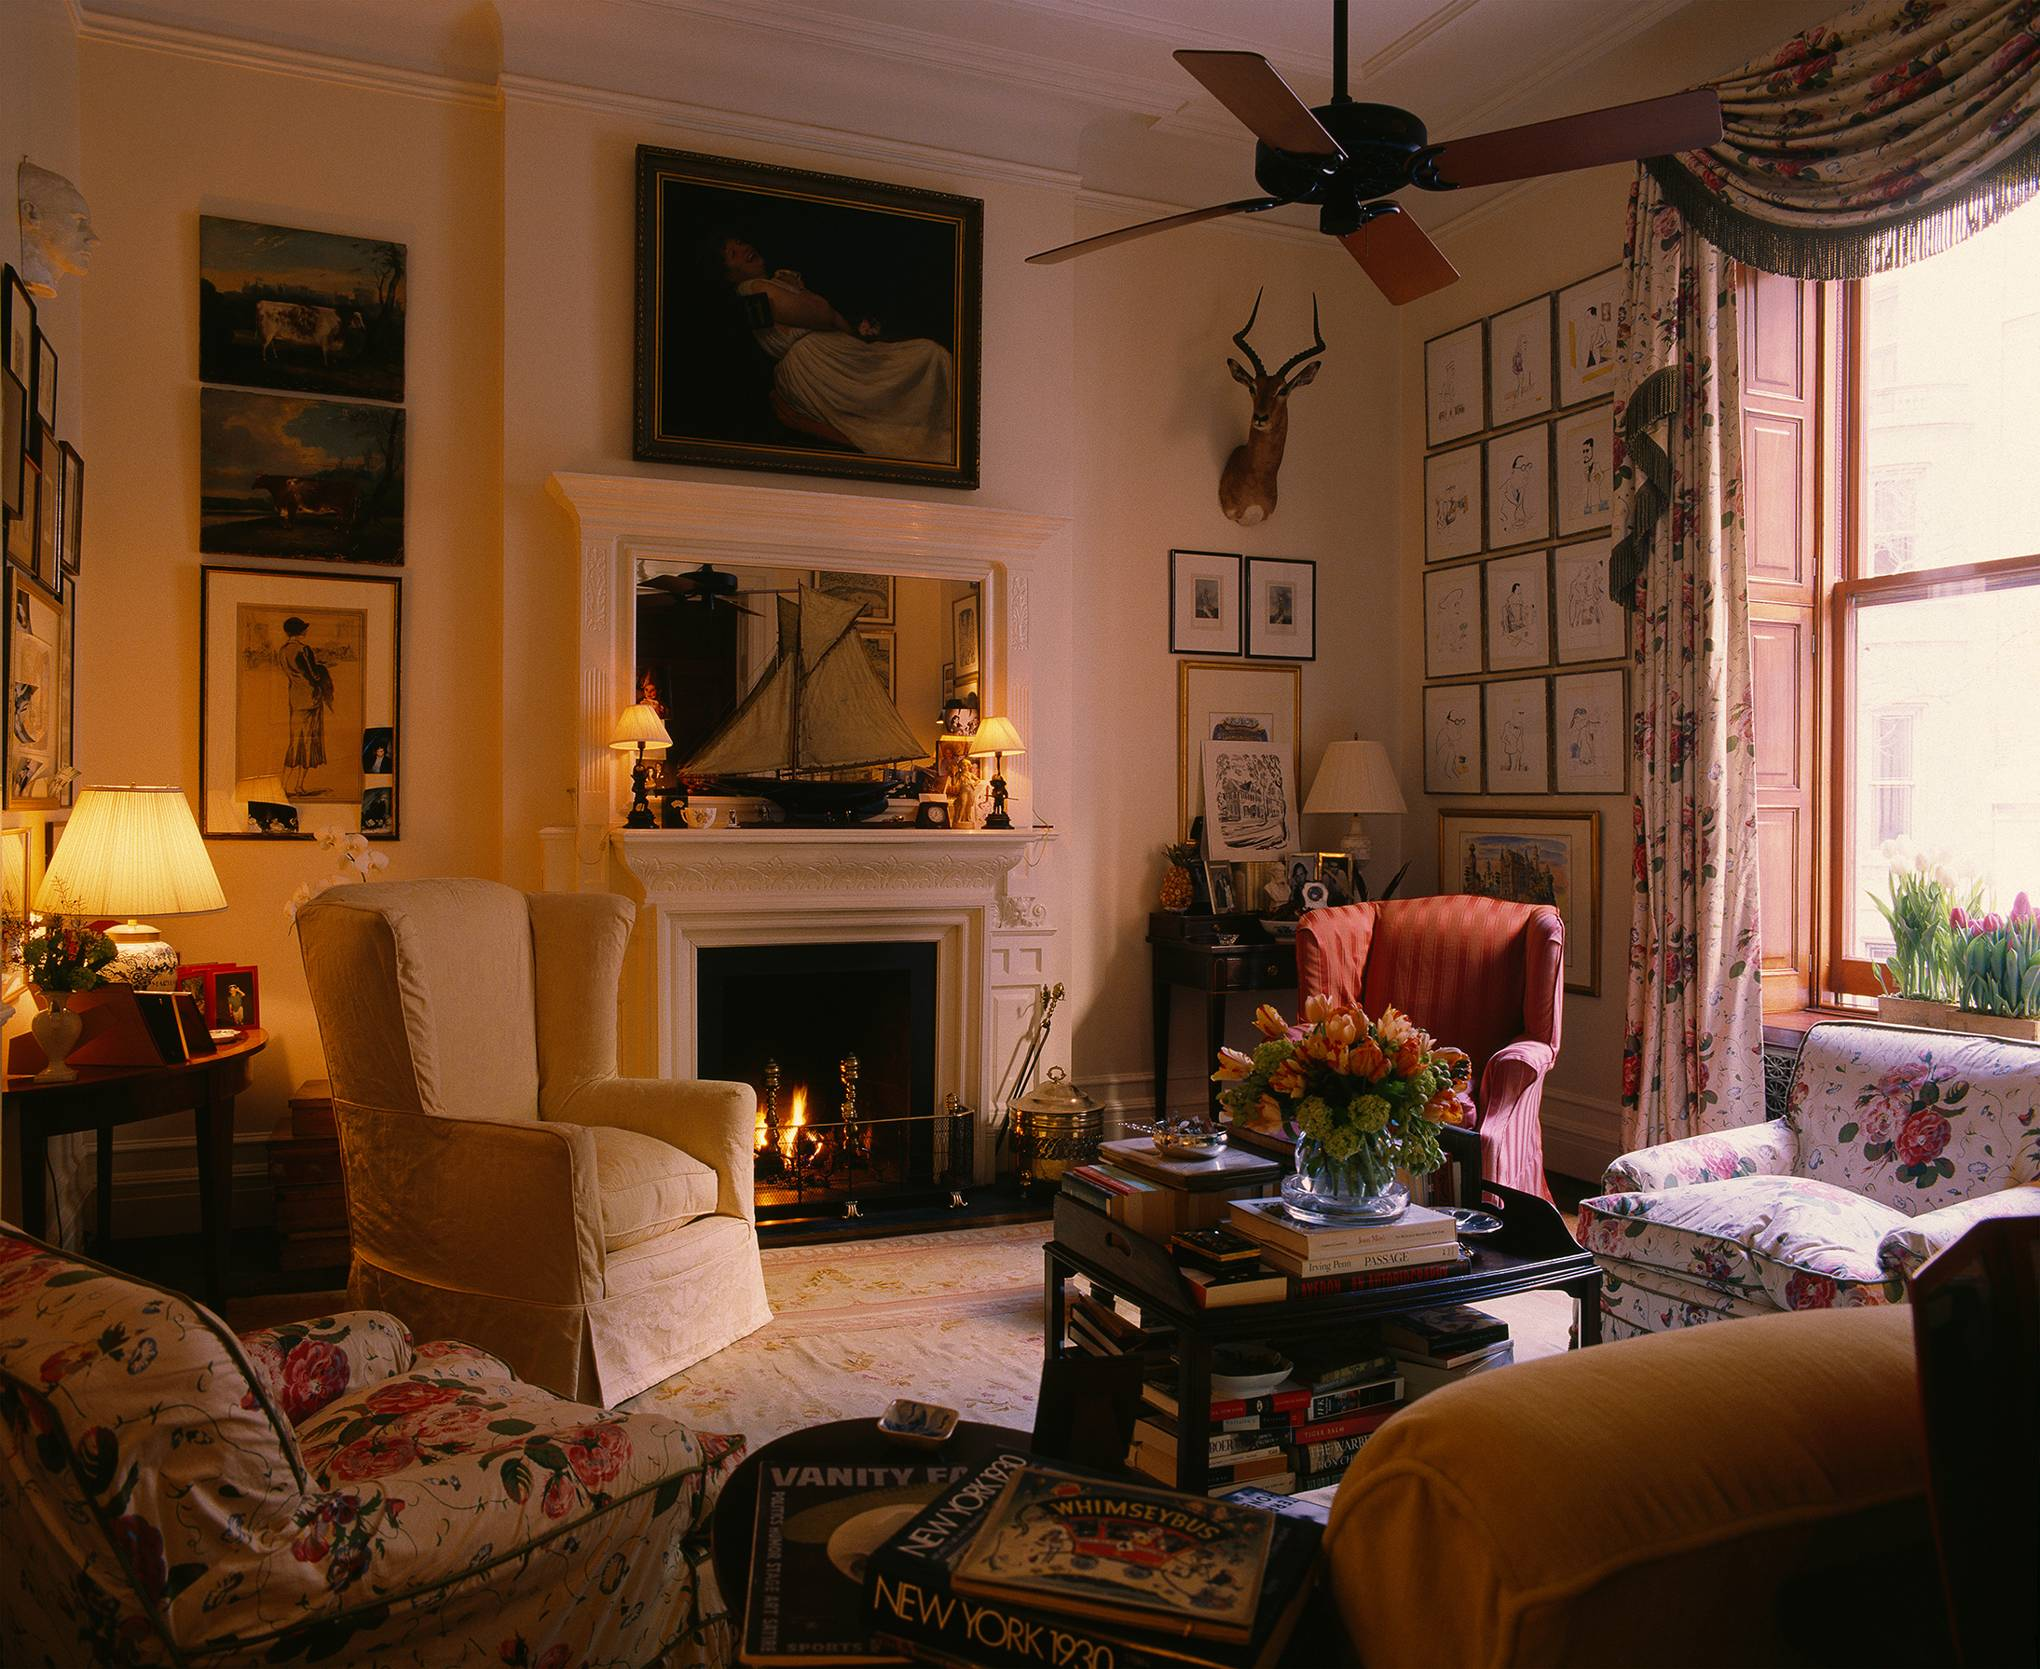 From the archive: Graydon Carter's apartment in the Dakota